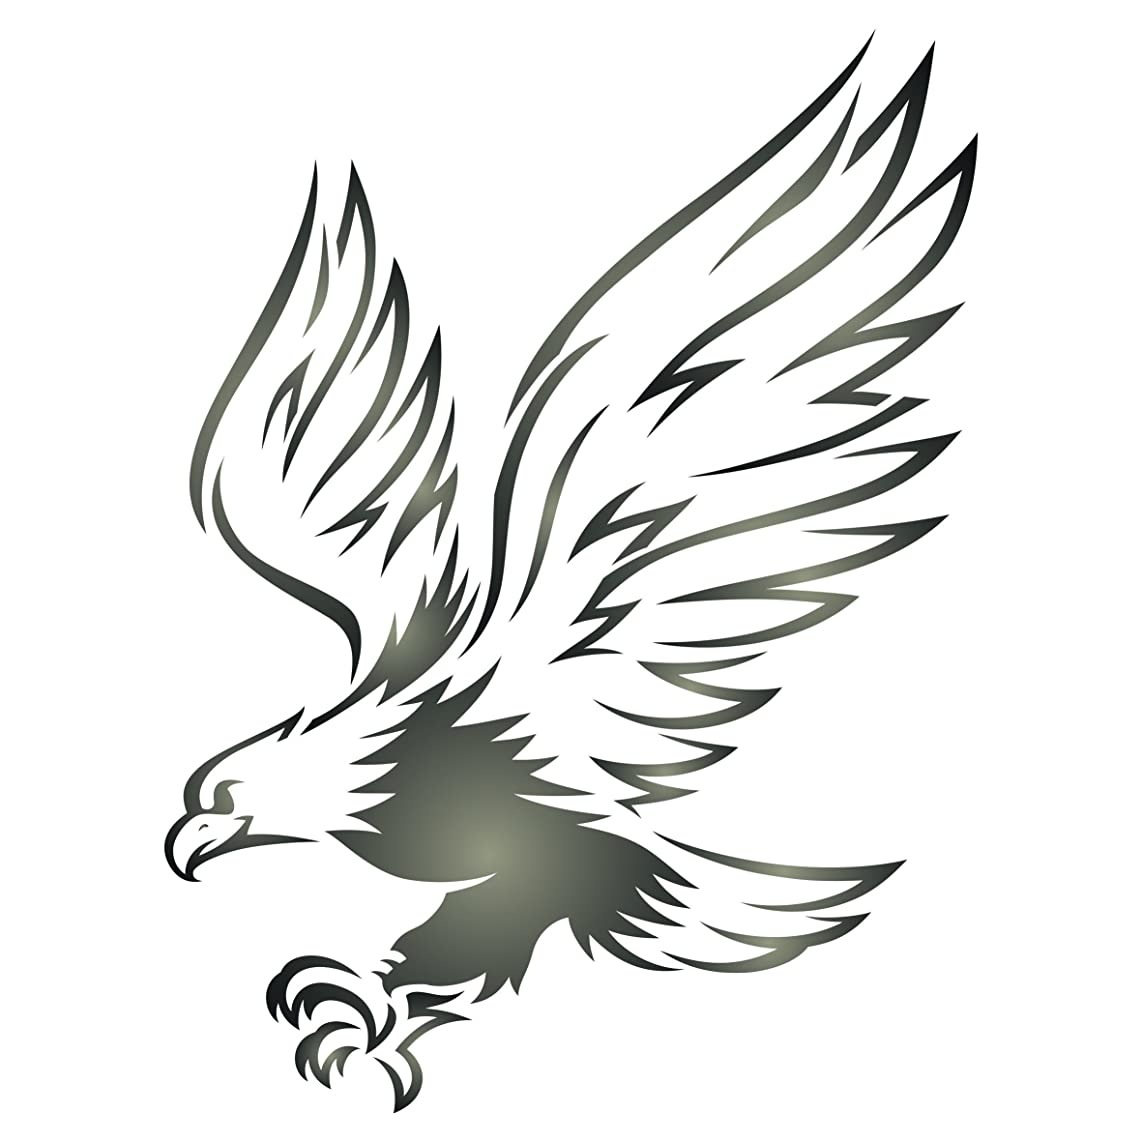 Eagle Stencil -8.5 x 11.5 inch (L) - Reusable Bird Animal Wildlife Wall Stencil Template - Use on Paper Projects Scrapbook Journal Walls Floors Fabric Furniture Glass Wood etc.